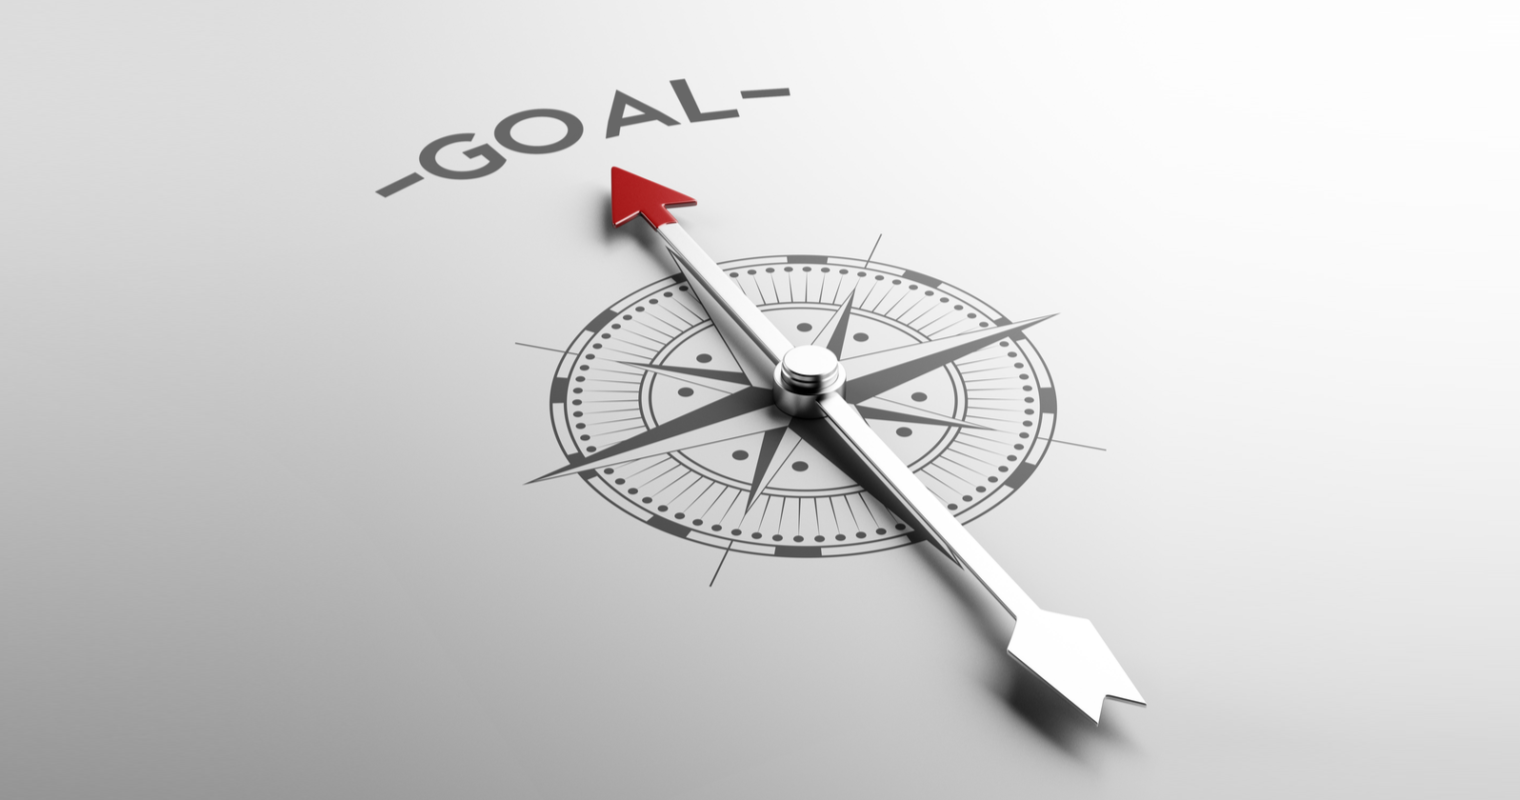 Top 12 Strategic & Tactical SEO Goals to Consider This Year